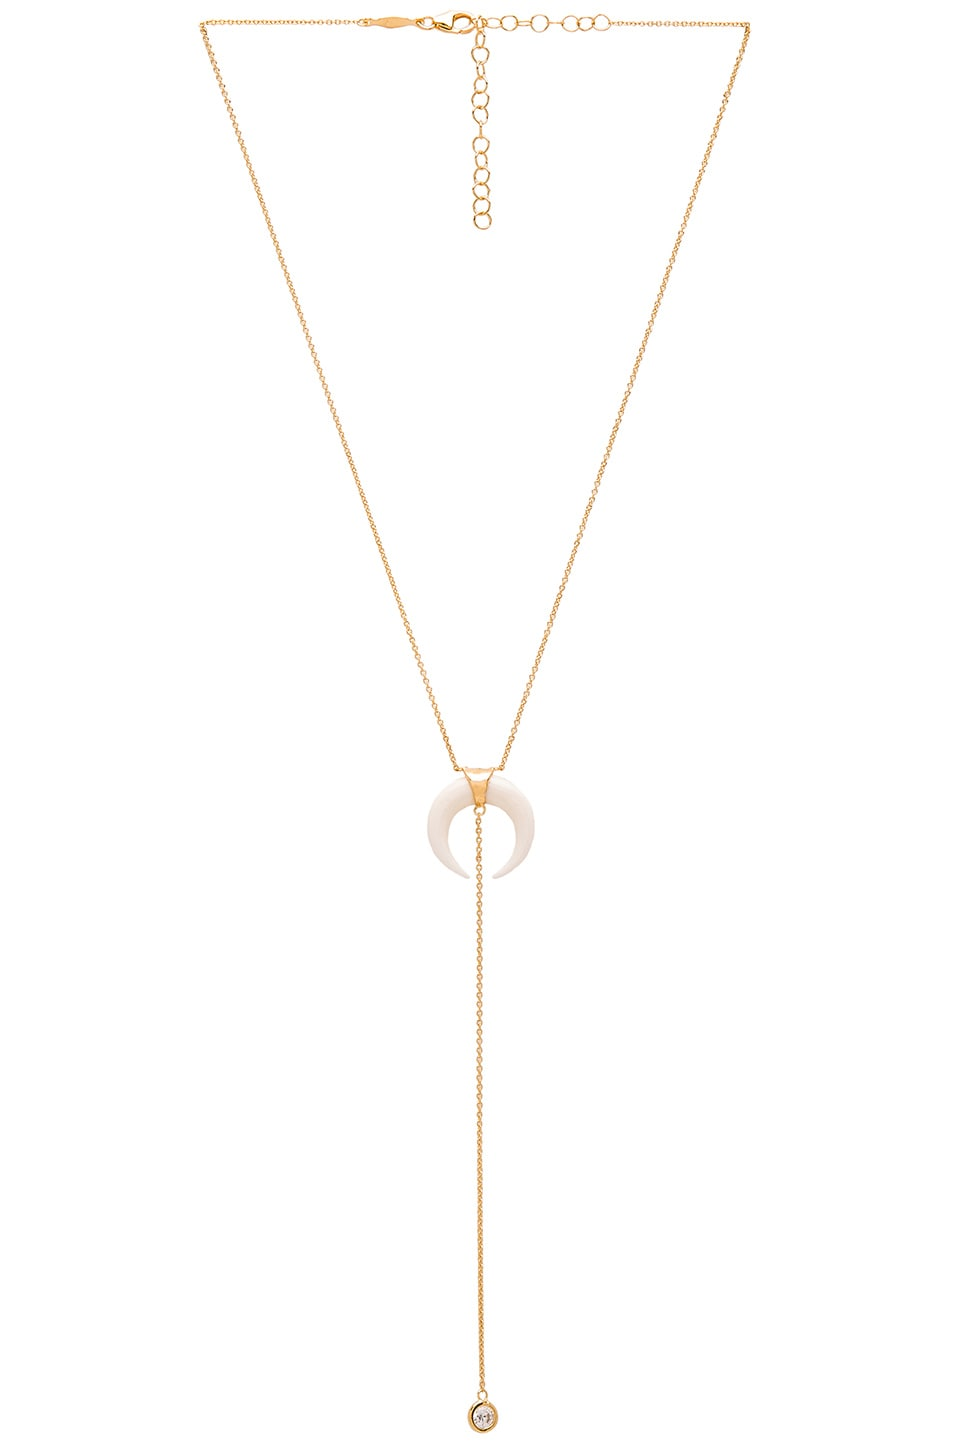 Jacquie Aiche Double Bone Horn Necklace in Gold